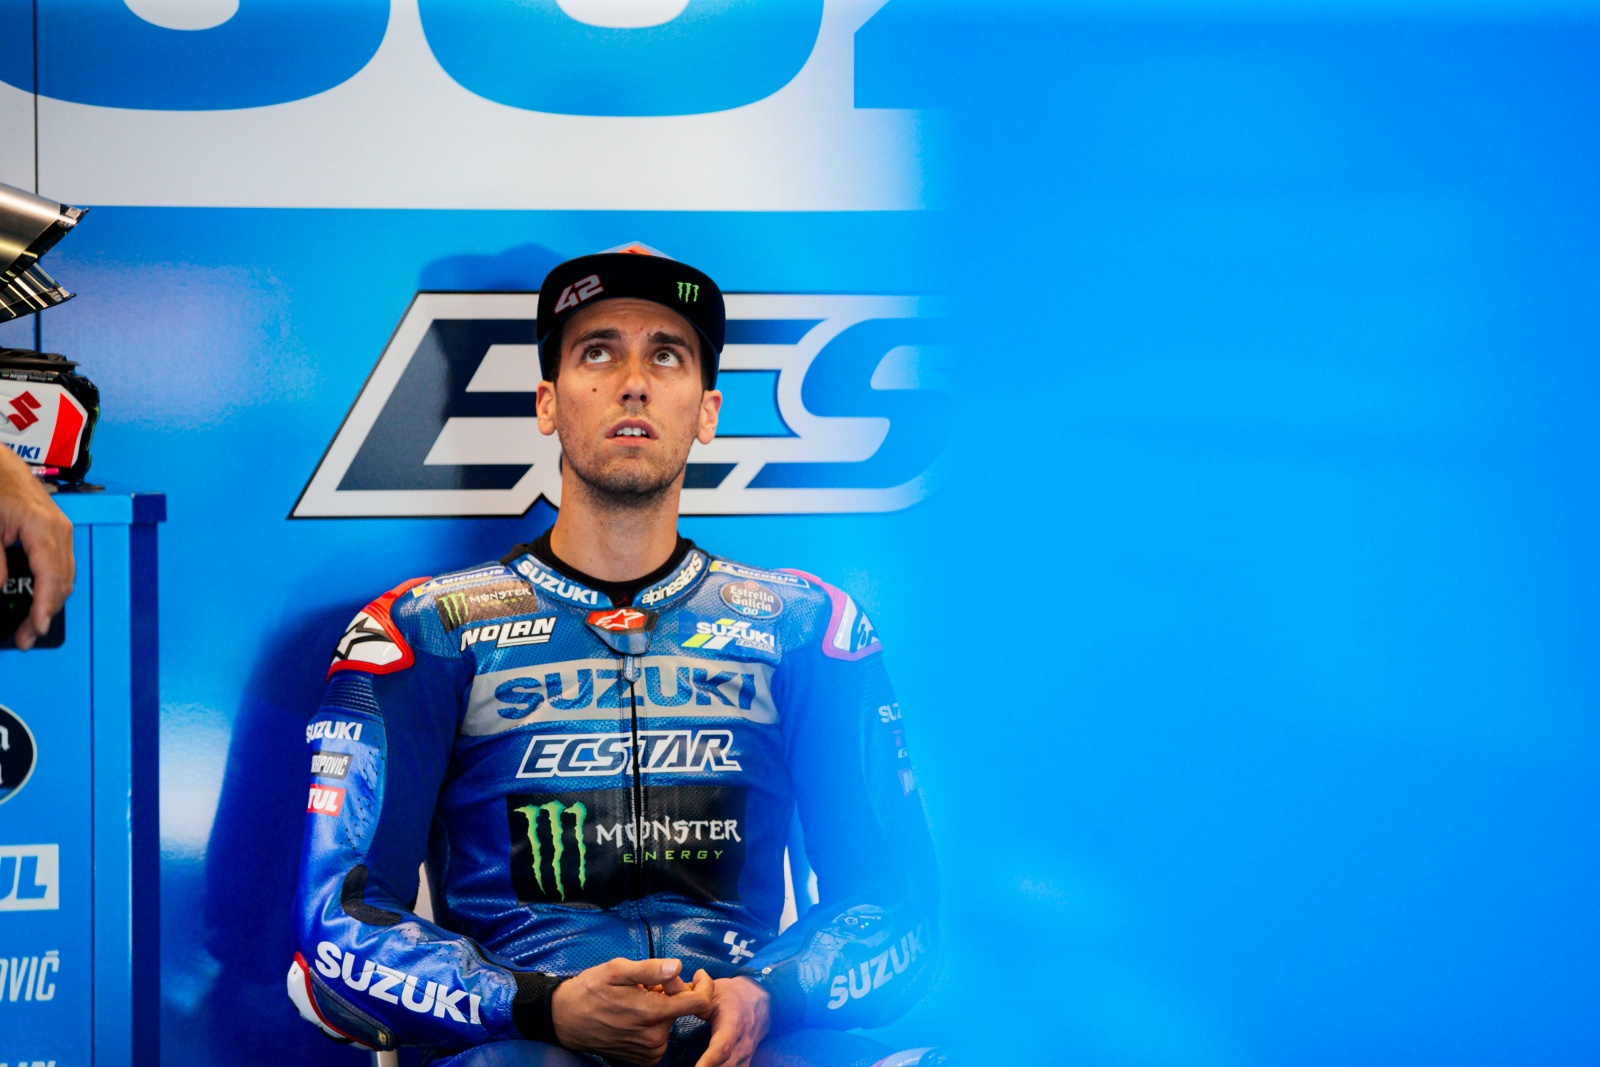 MIR AND RINS STORM THE TIMESHEETS ON AUSTRIA RETURN